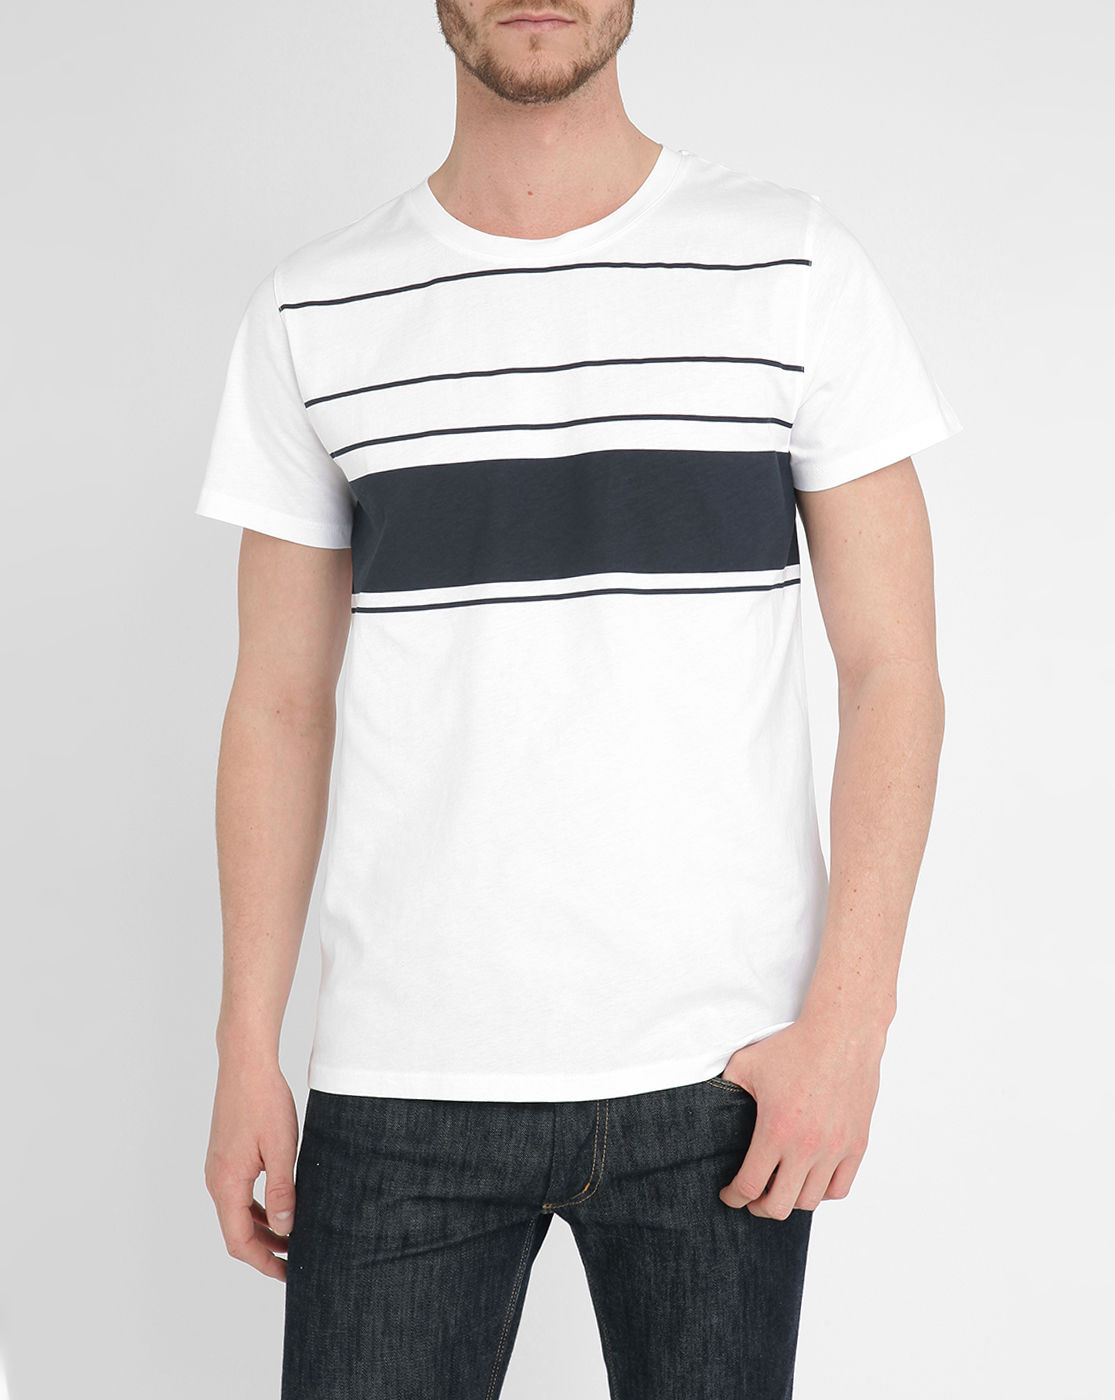 A p c white regate large stripes t shirt in white for men for Apc white t shirt